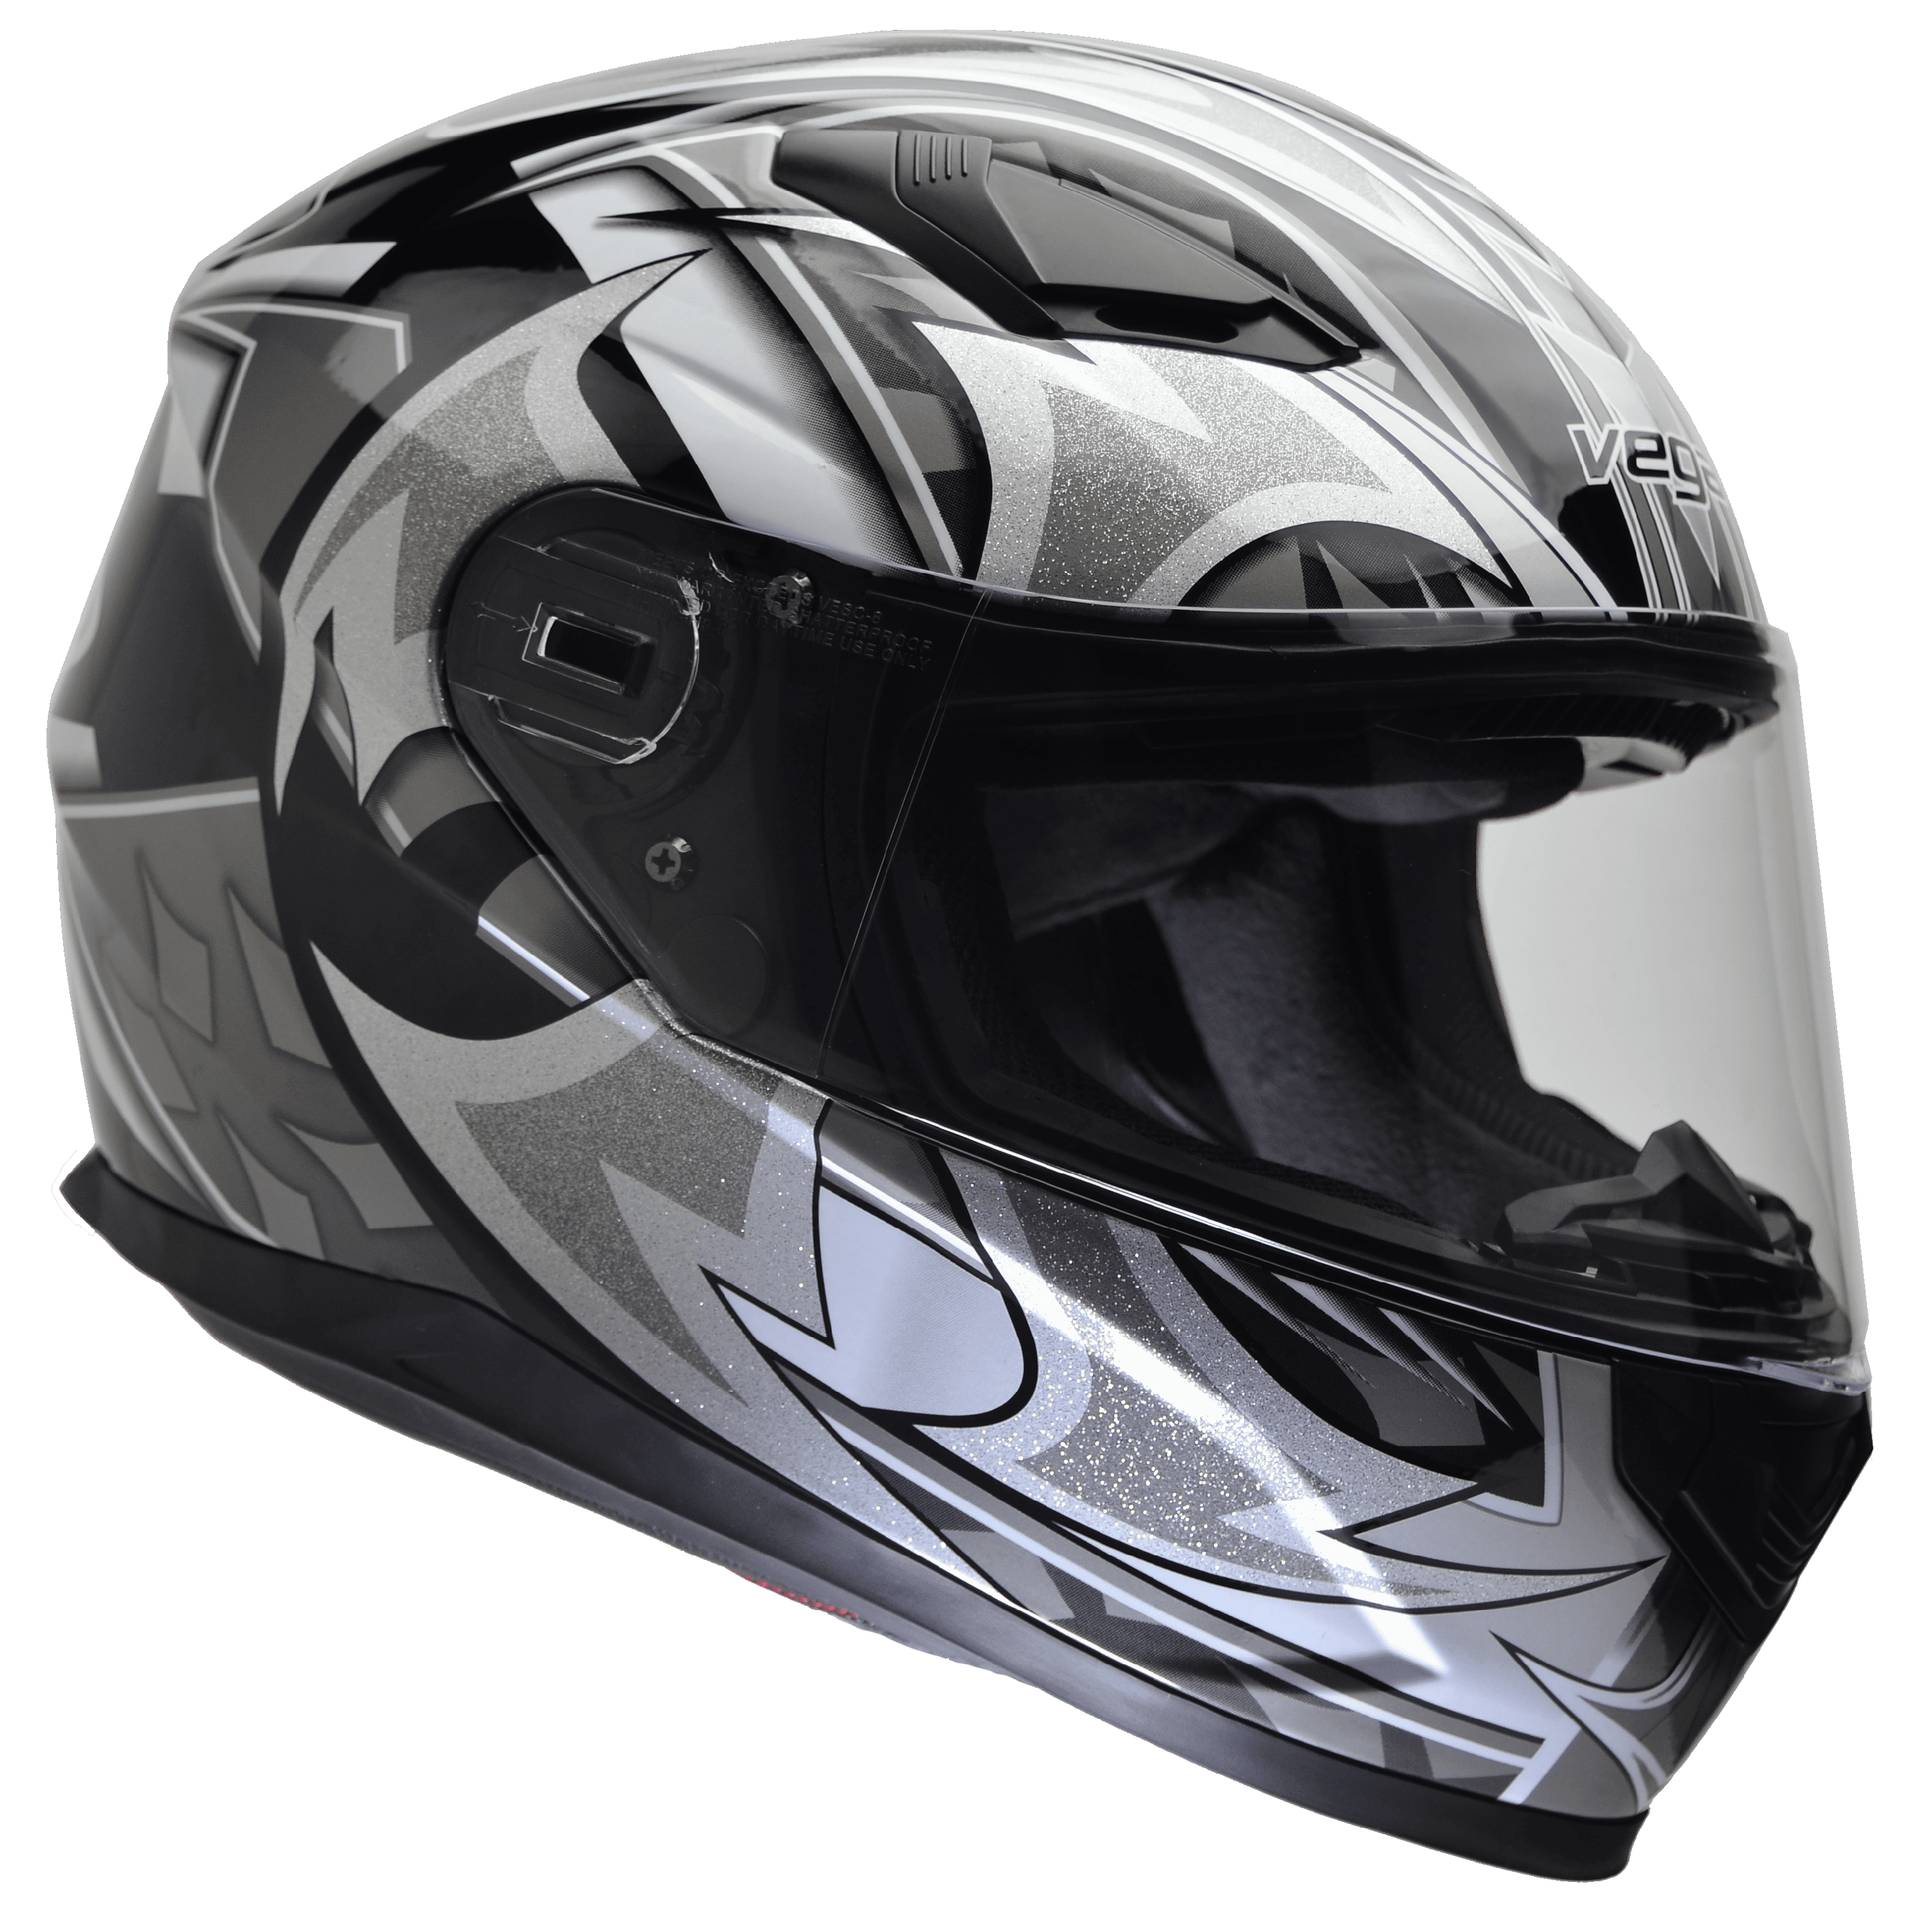 GMAX G054005 GMAX Helmet Replacement Parts and Accessories